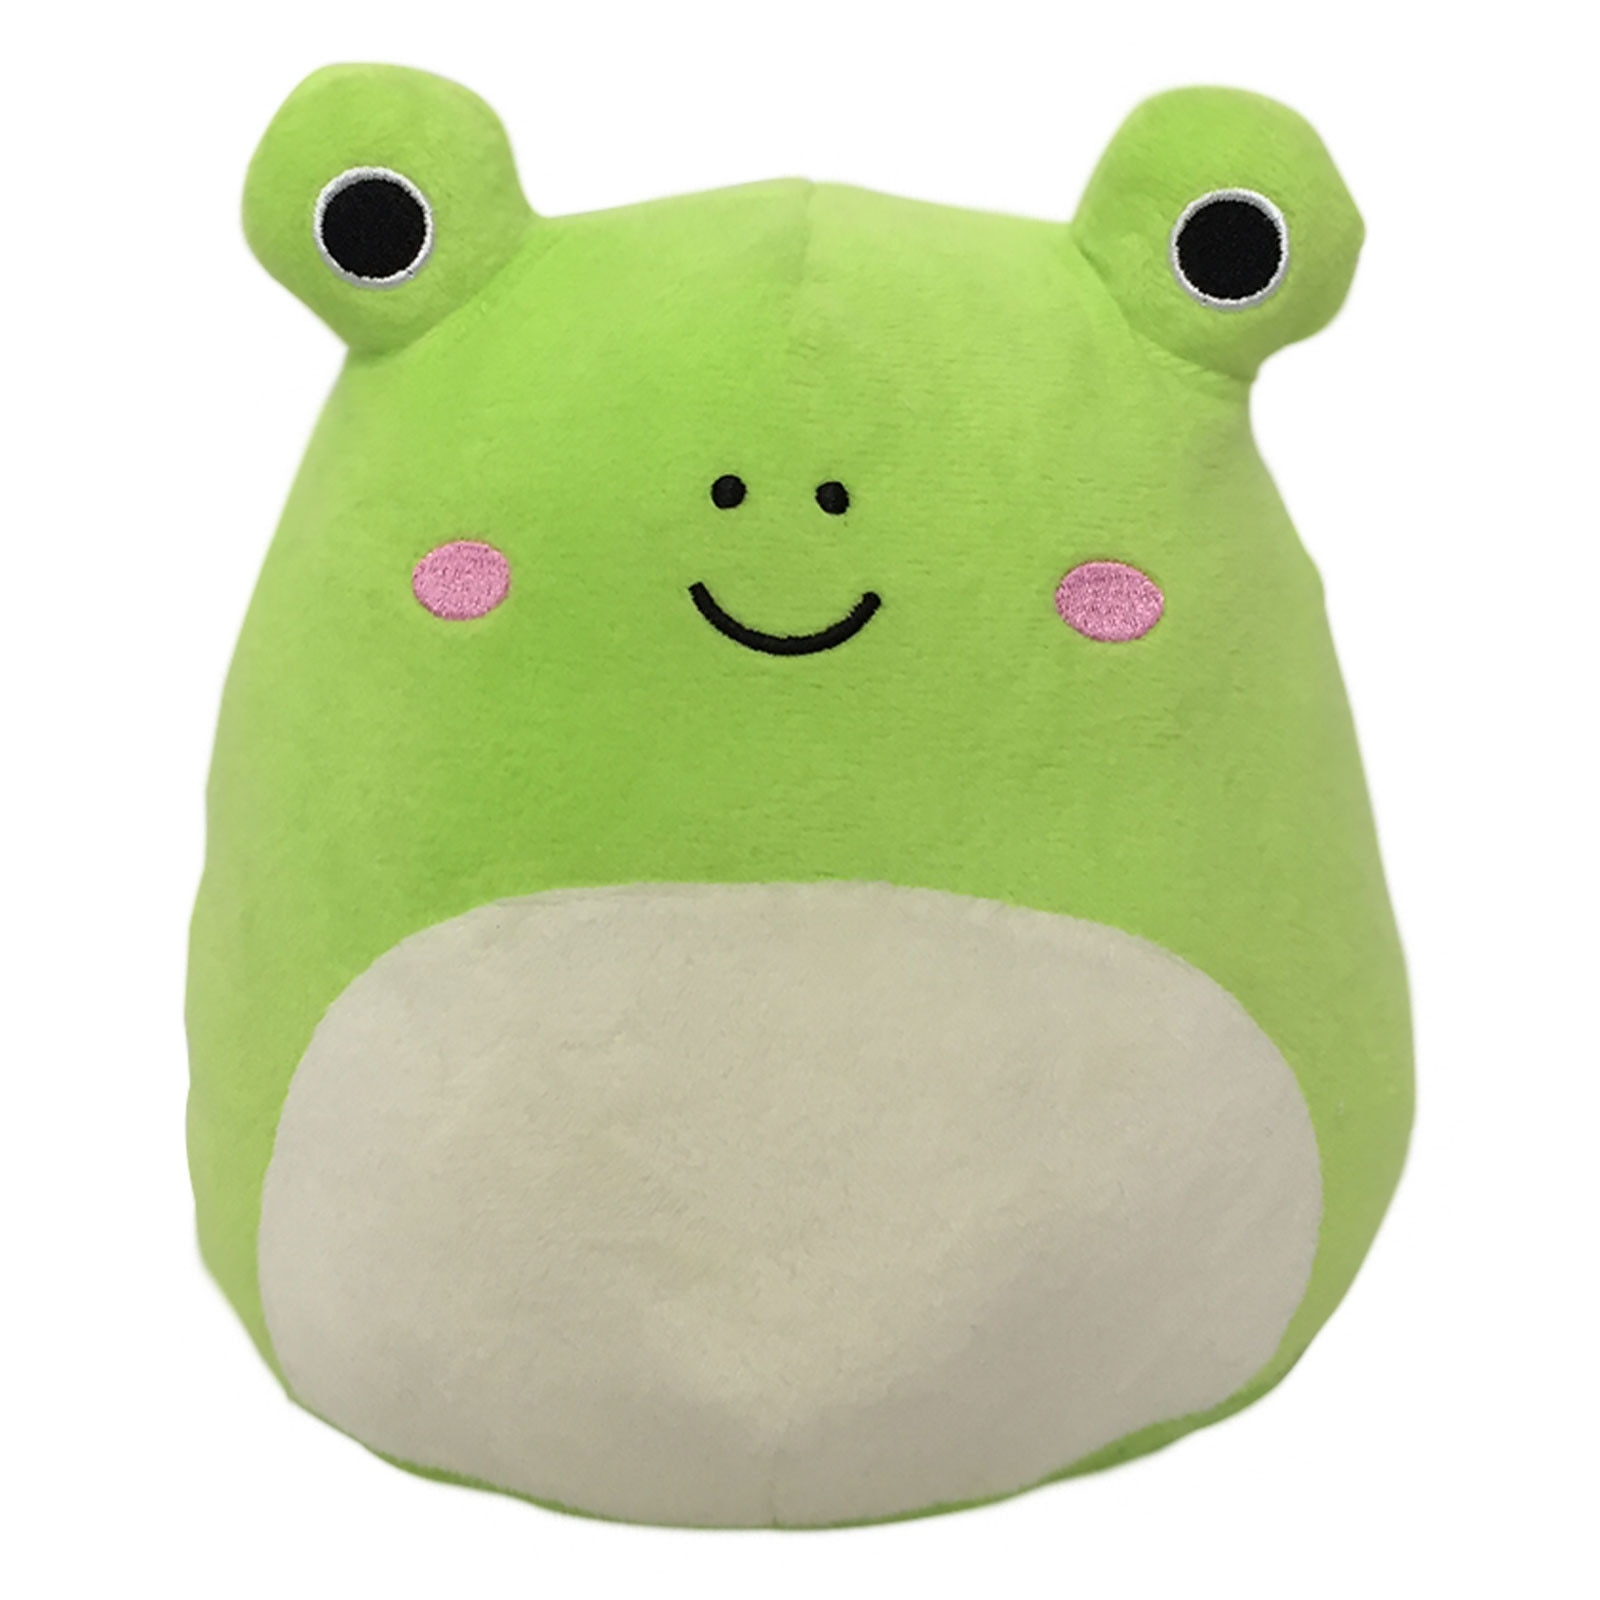 3d frogs pillow plush toys stuffed animal soft waist cushion plush stuffed toy decoration doll pp cotton kids birthday gift 5 20cm 3d Smile Frogs Pillow Soft Waist Cushion Plush Stuffed Toy Pillow Stuffed Down Cotton Decoration Gift Squishpillows